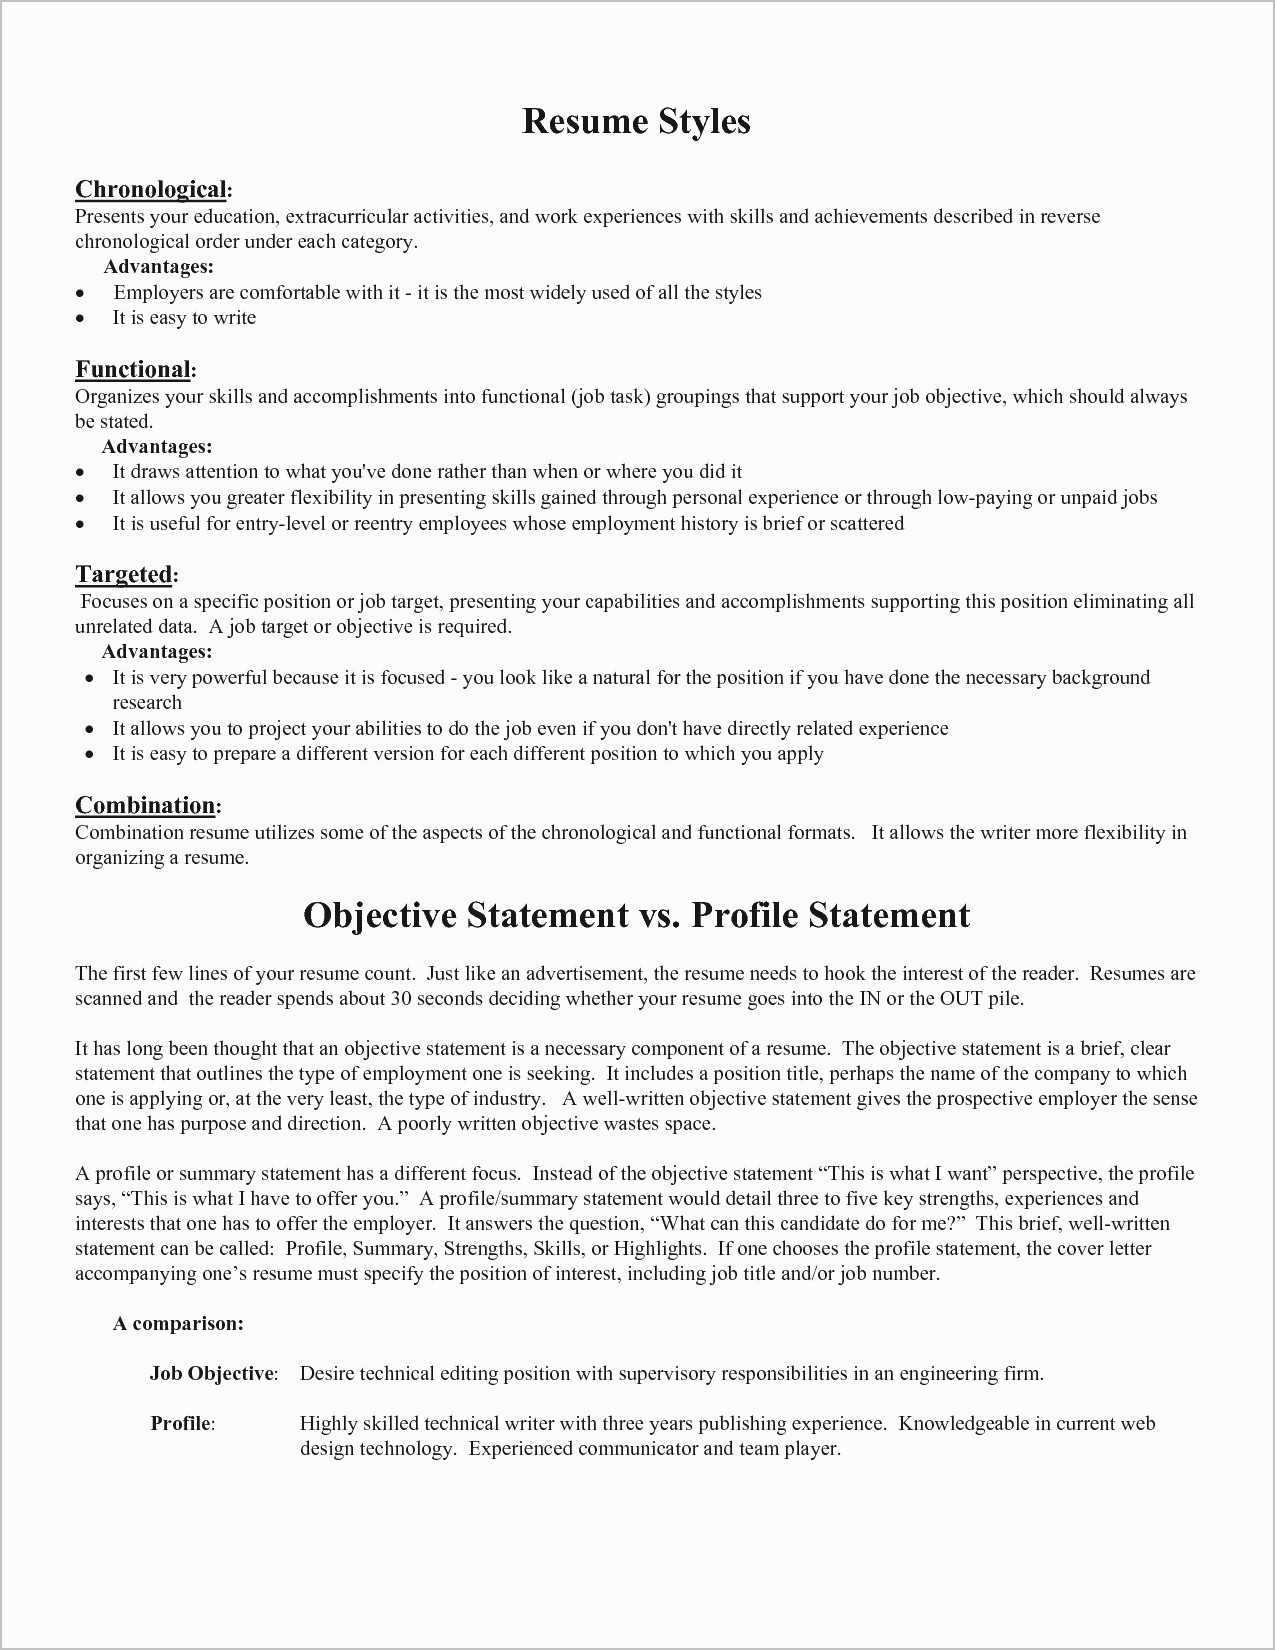 20 Years Experience Resume - No Job Experience Resume Fresh Resume for First Job No Experience